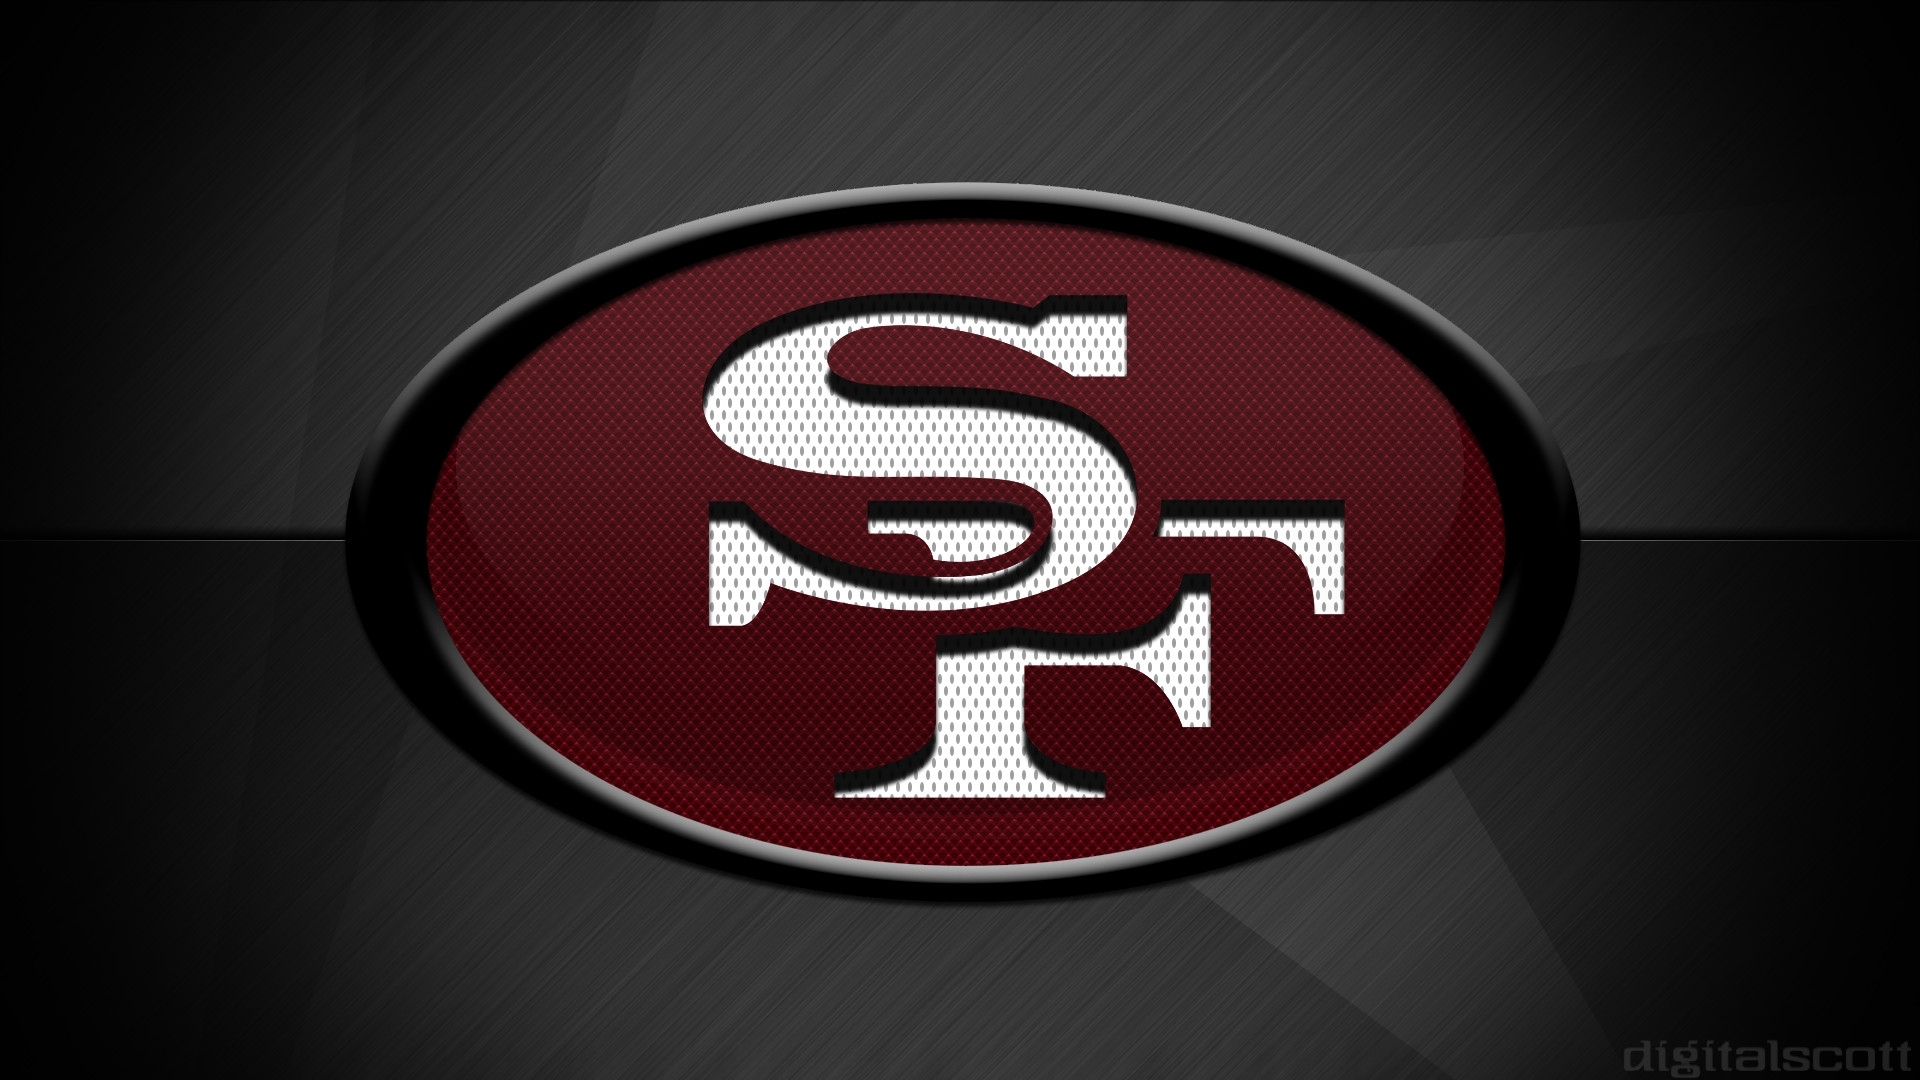 san francisco 49ers screensaver wallpaper (66+ images)